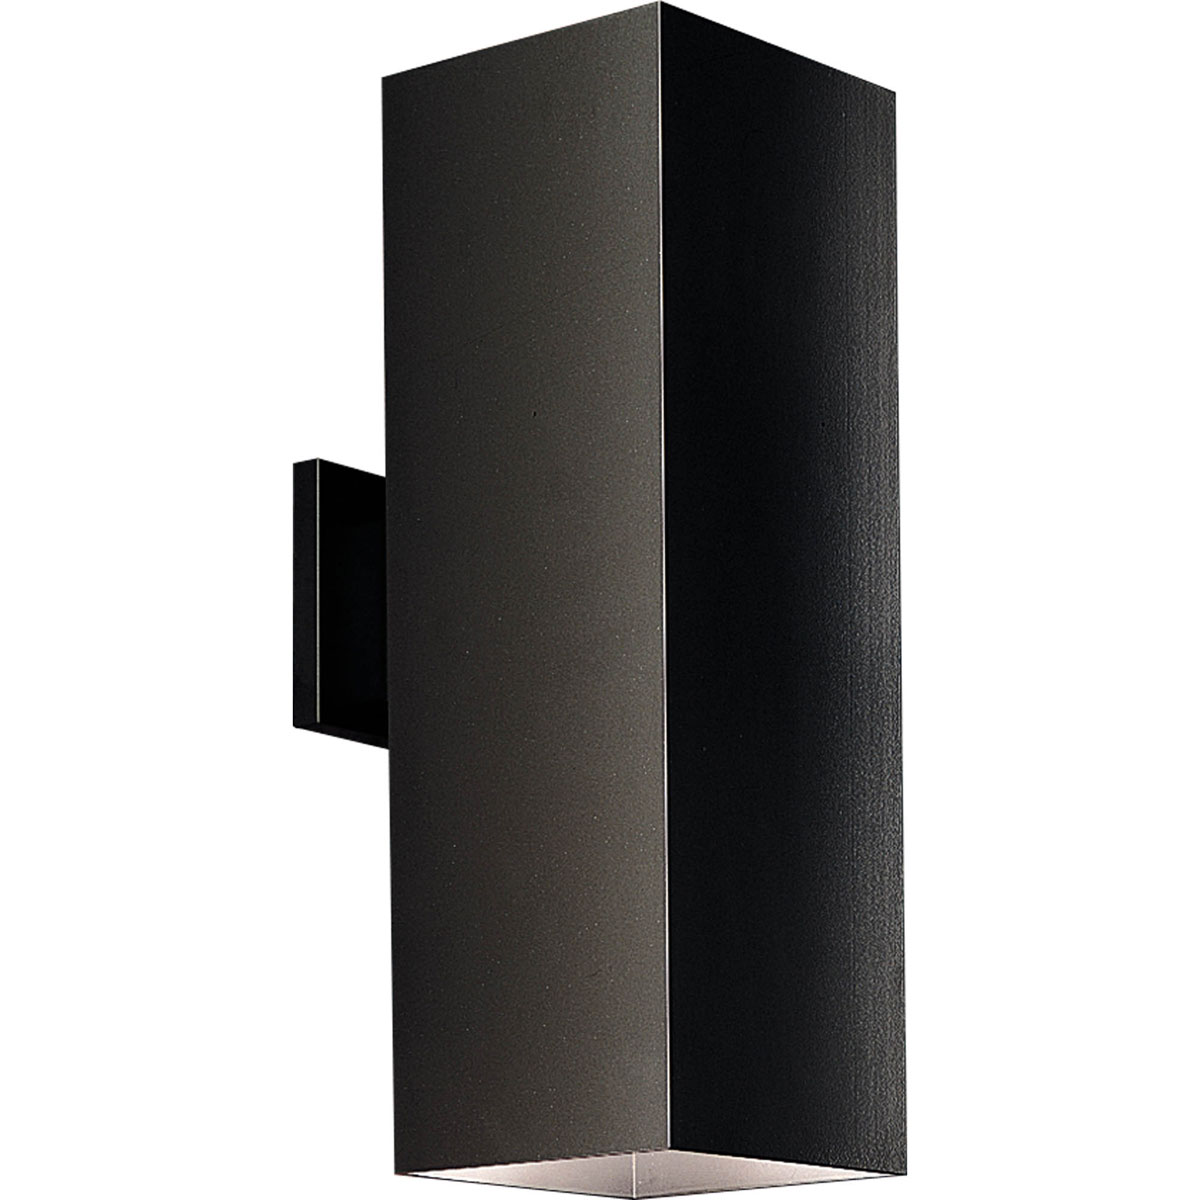 Updown square outdoor wall light by progress lighting p5644 31 aloadofball Image collections